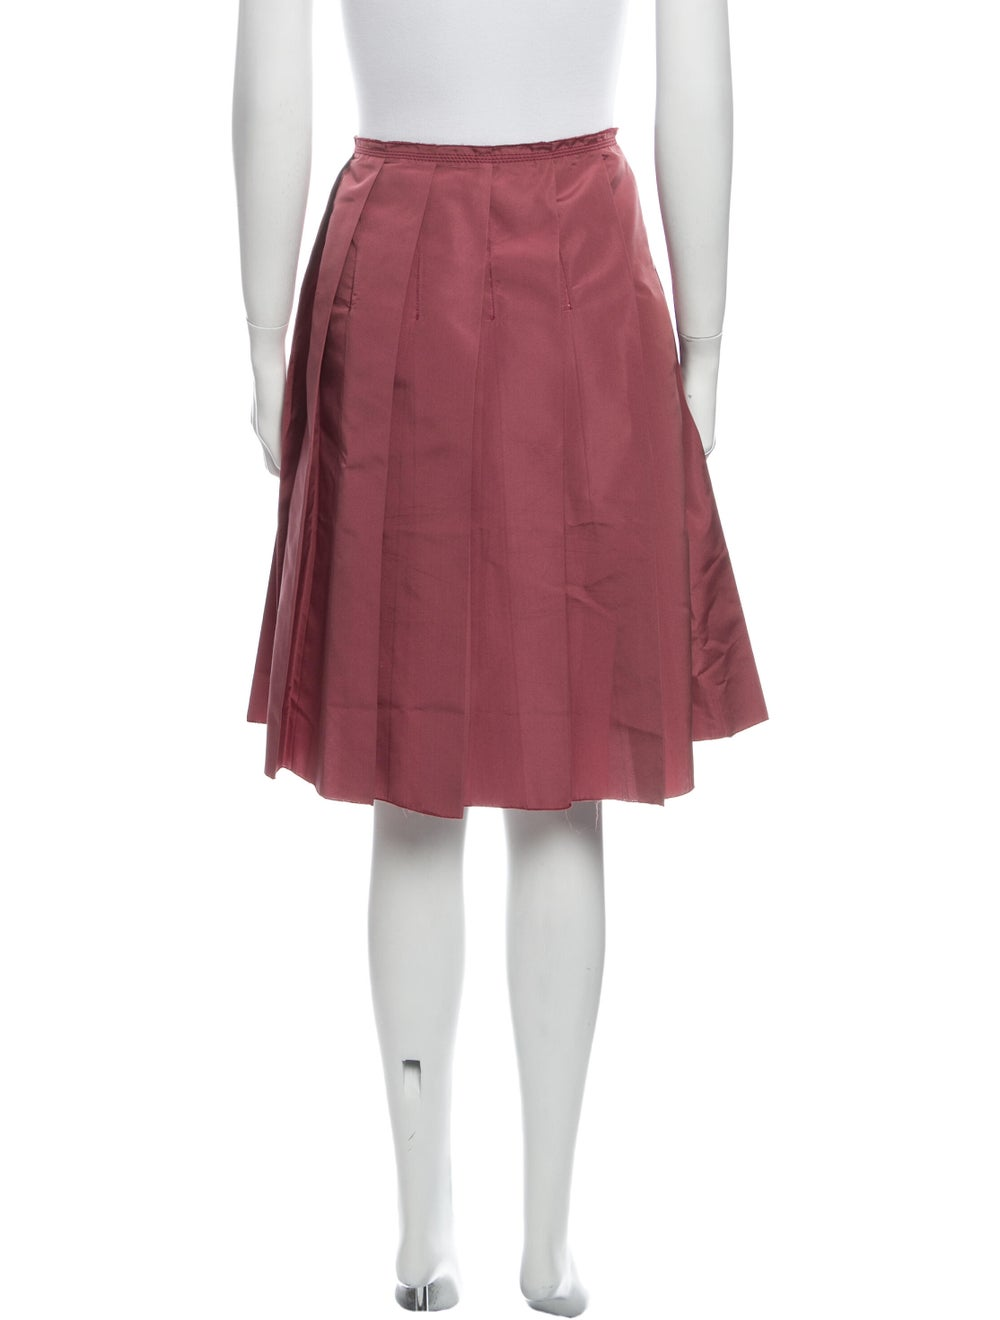 Prada Pleated Accents Knee-Length Skirt Red - image 3